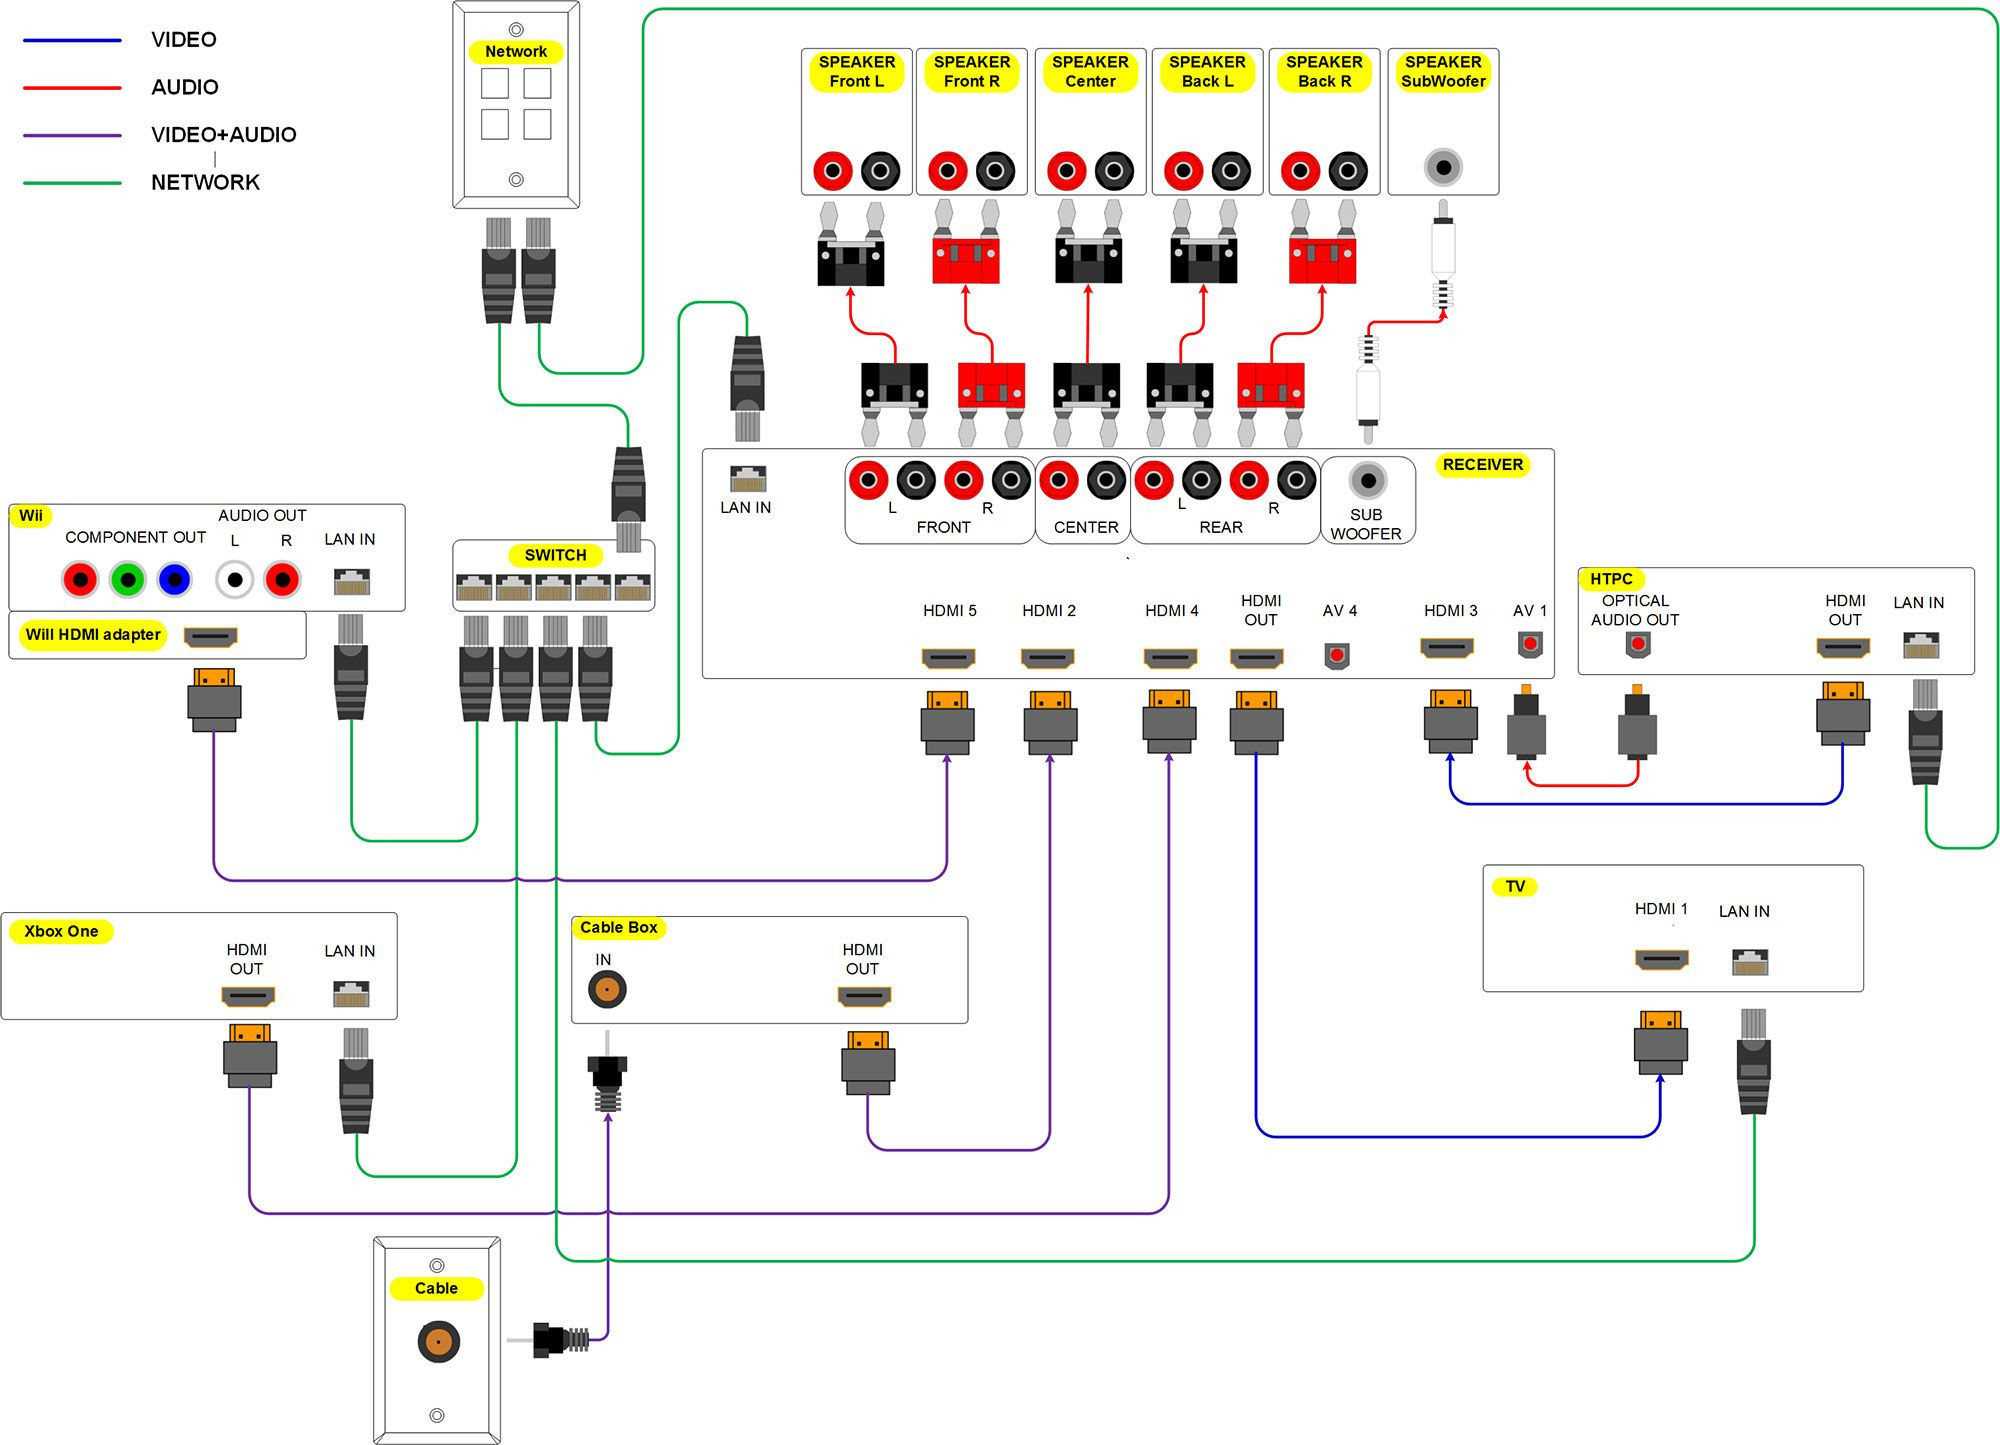 home theater subwoofer wiring diagram Collection-home theater system wiring diagram collection of wiring diagram u2022 rh wiringbase today Home Theater Hook Up Diagrams Home Theater Cable Diagram 12-q